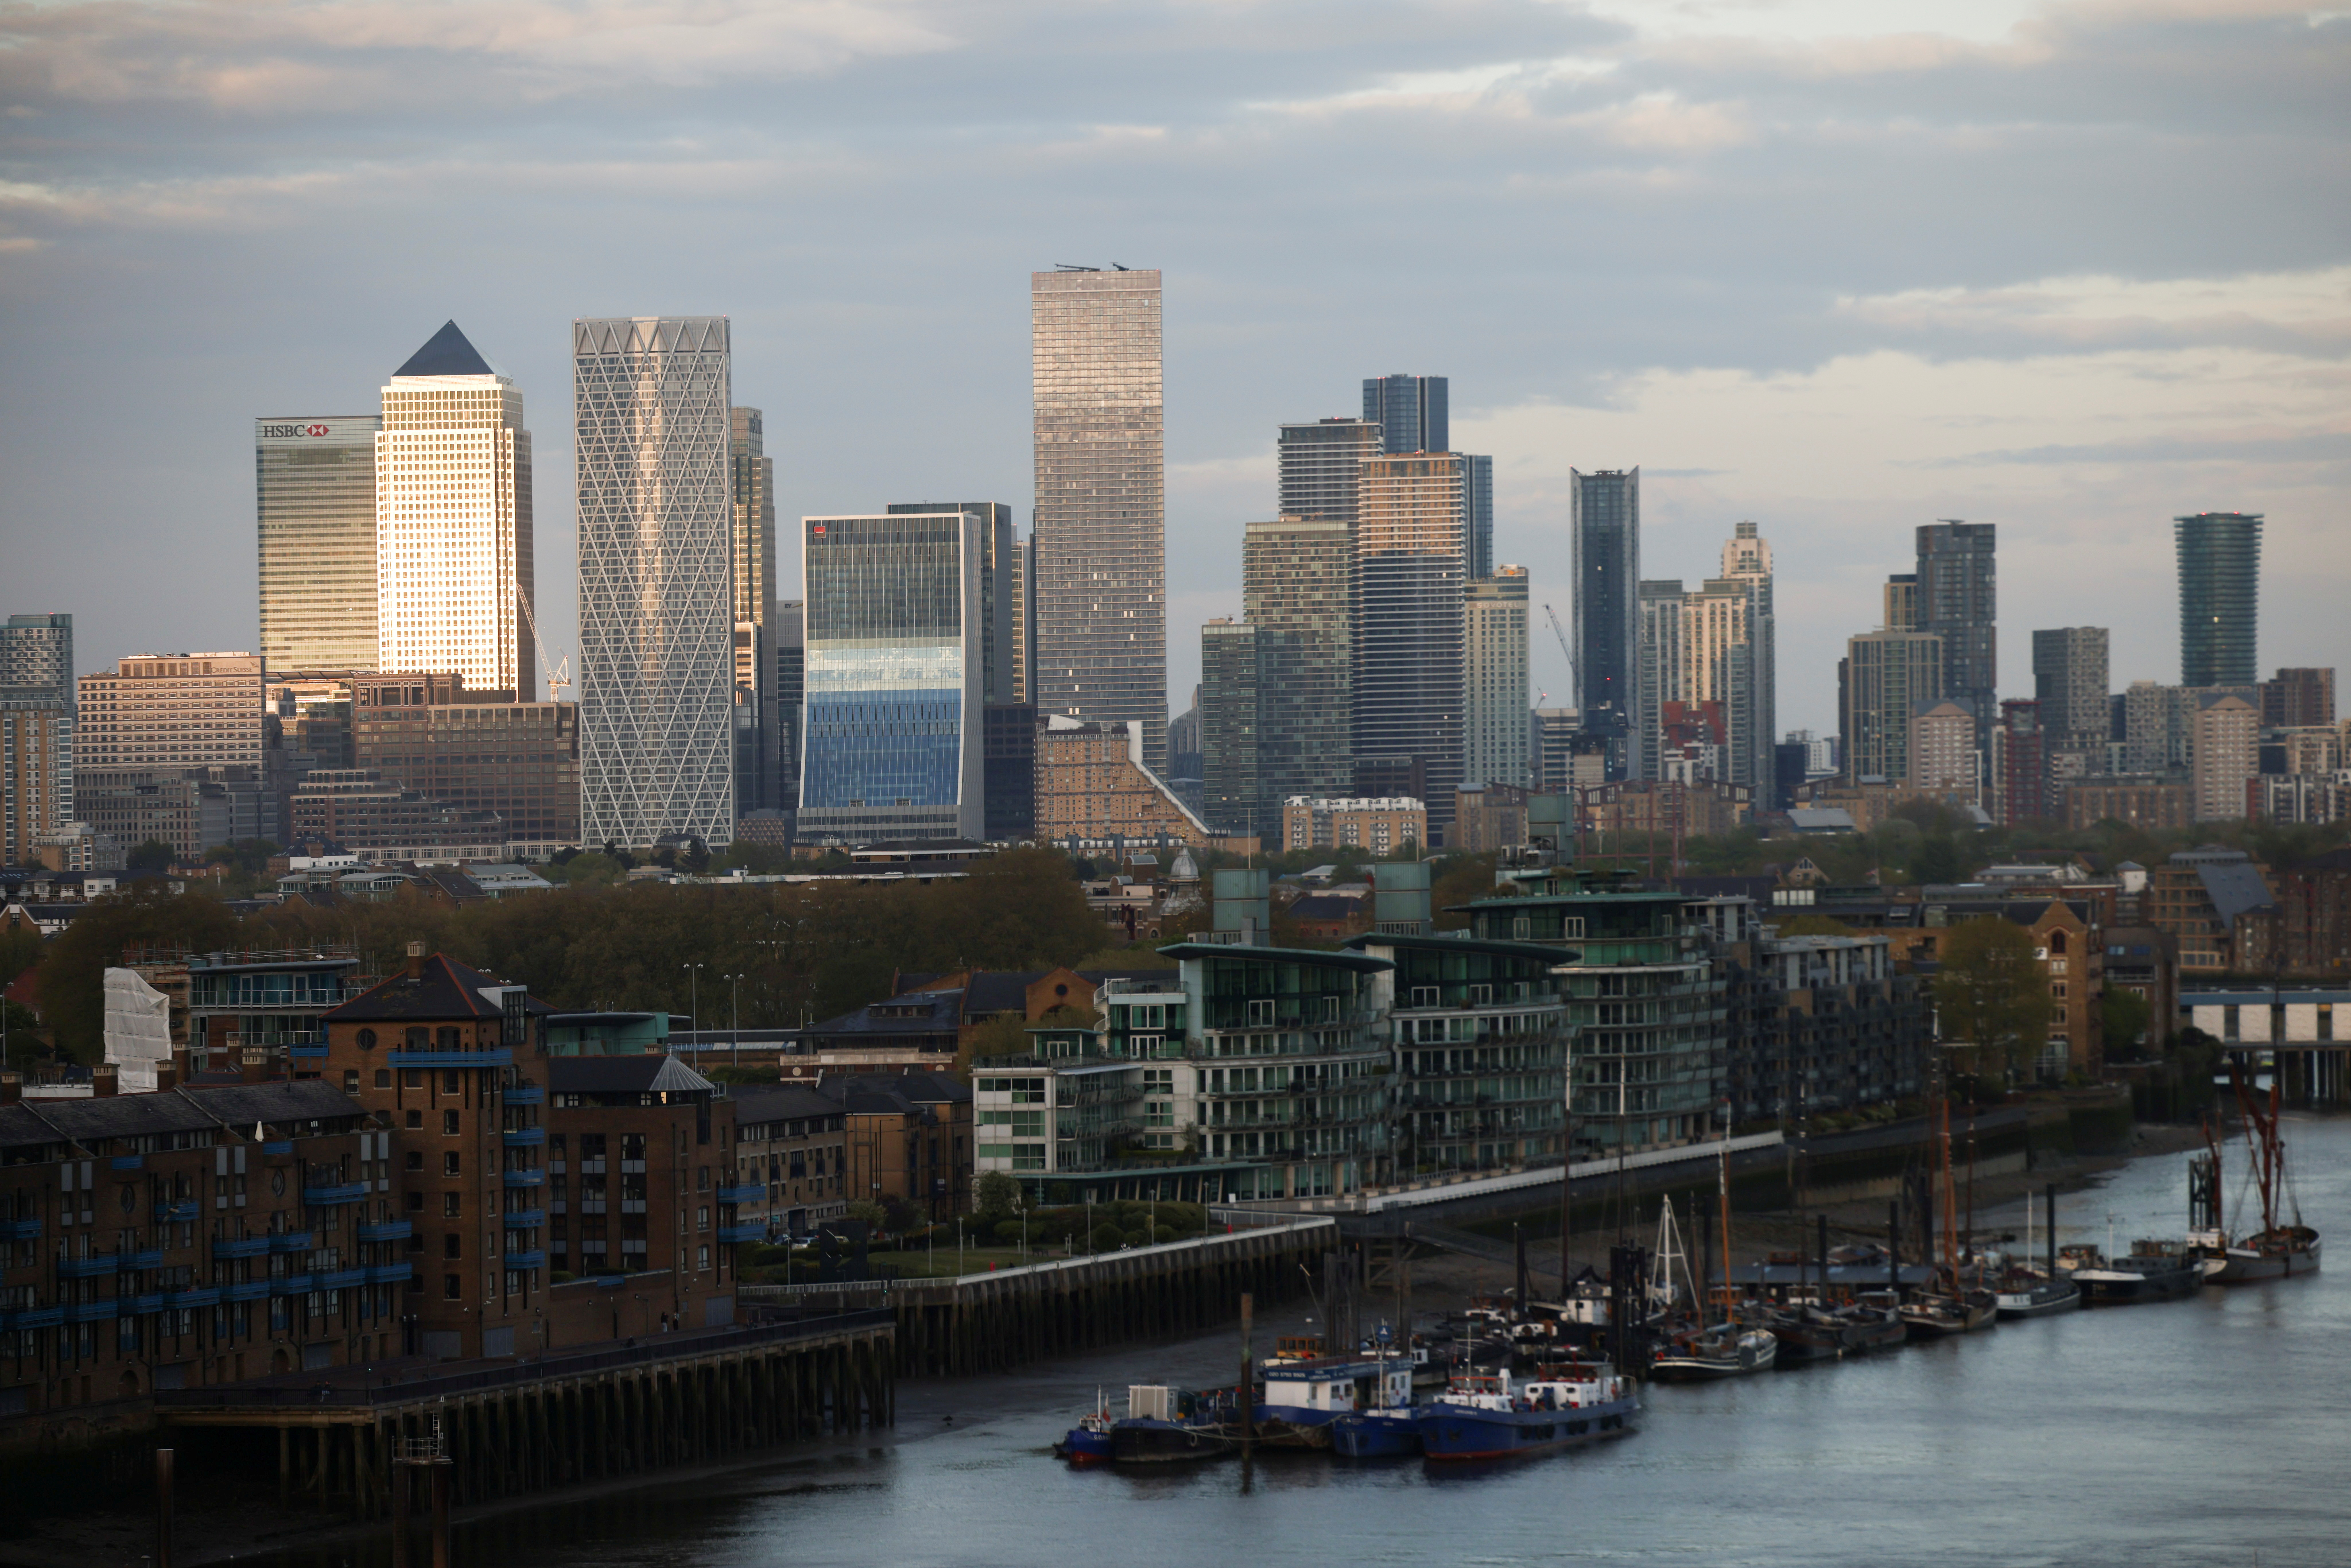 Skyscrapers in The City of London financial district are seen from City Hall in London, Britain, May 8, 2021. REUTERS/Henry Nicholls